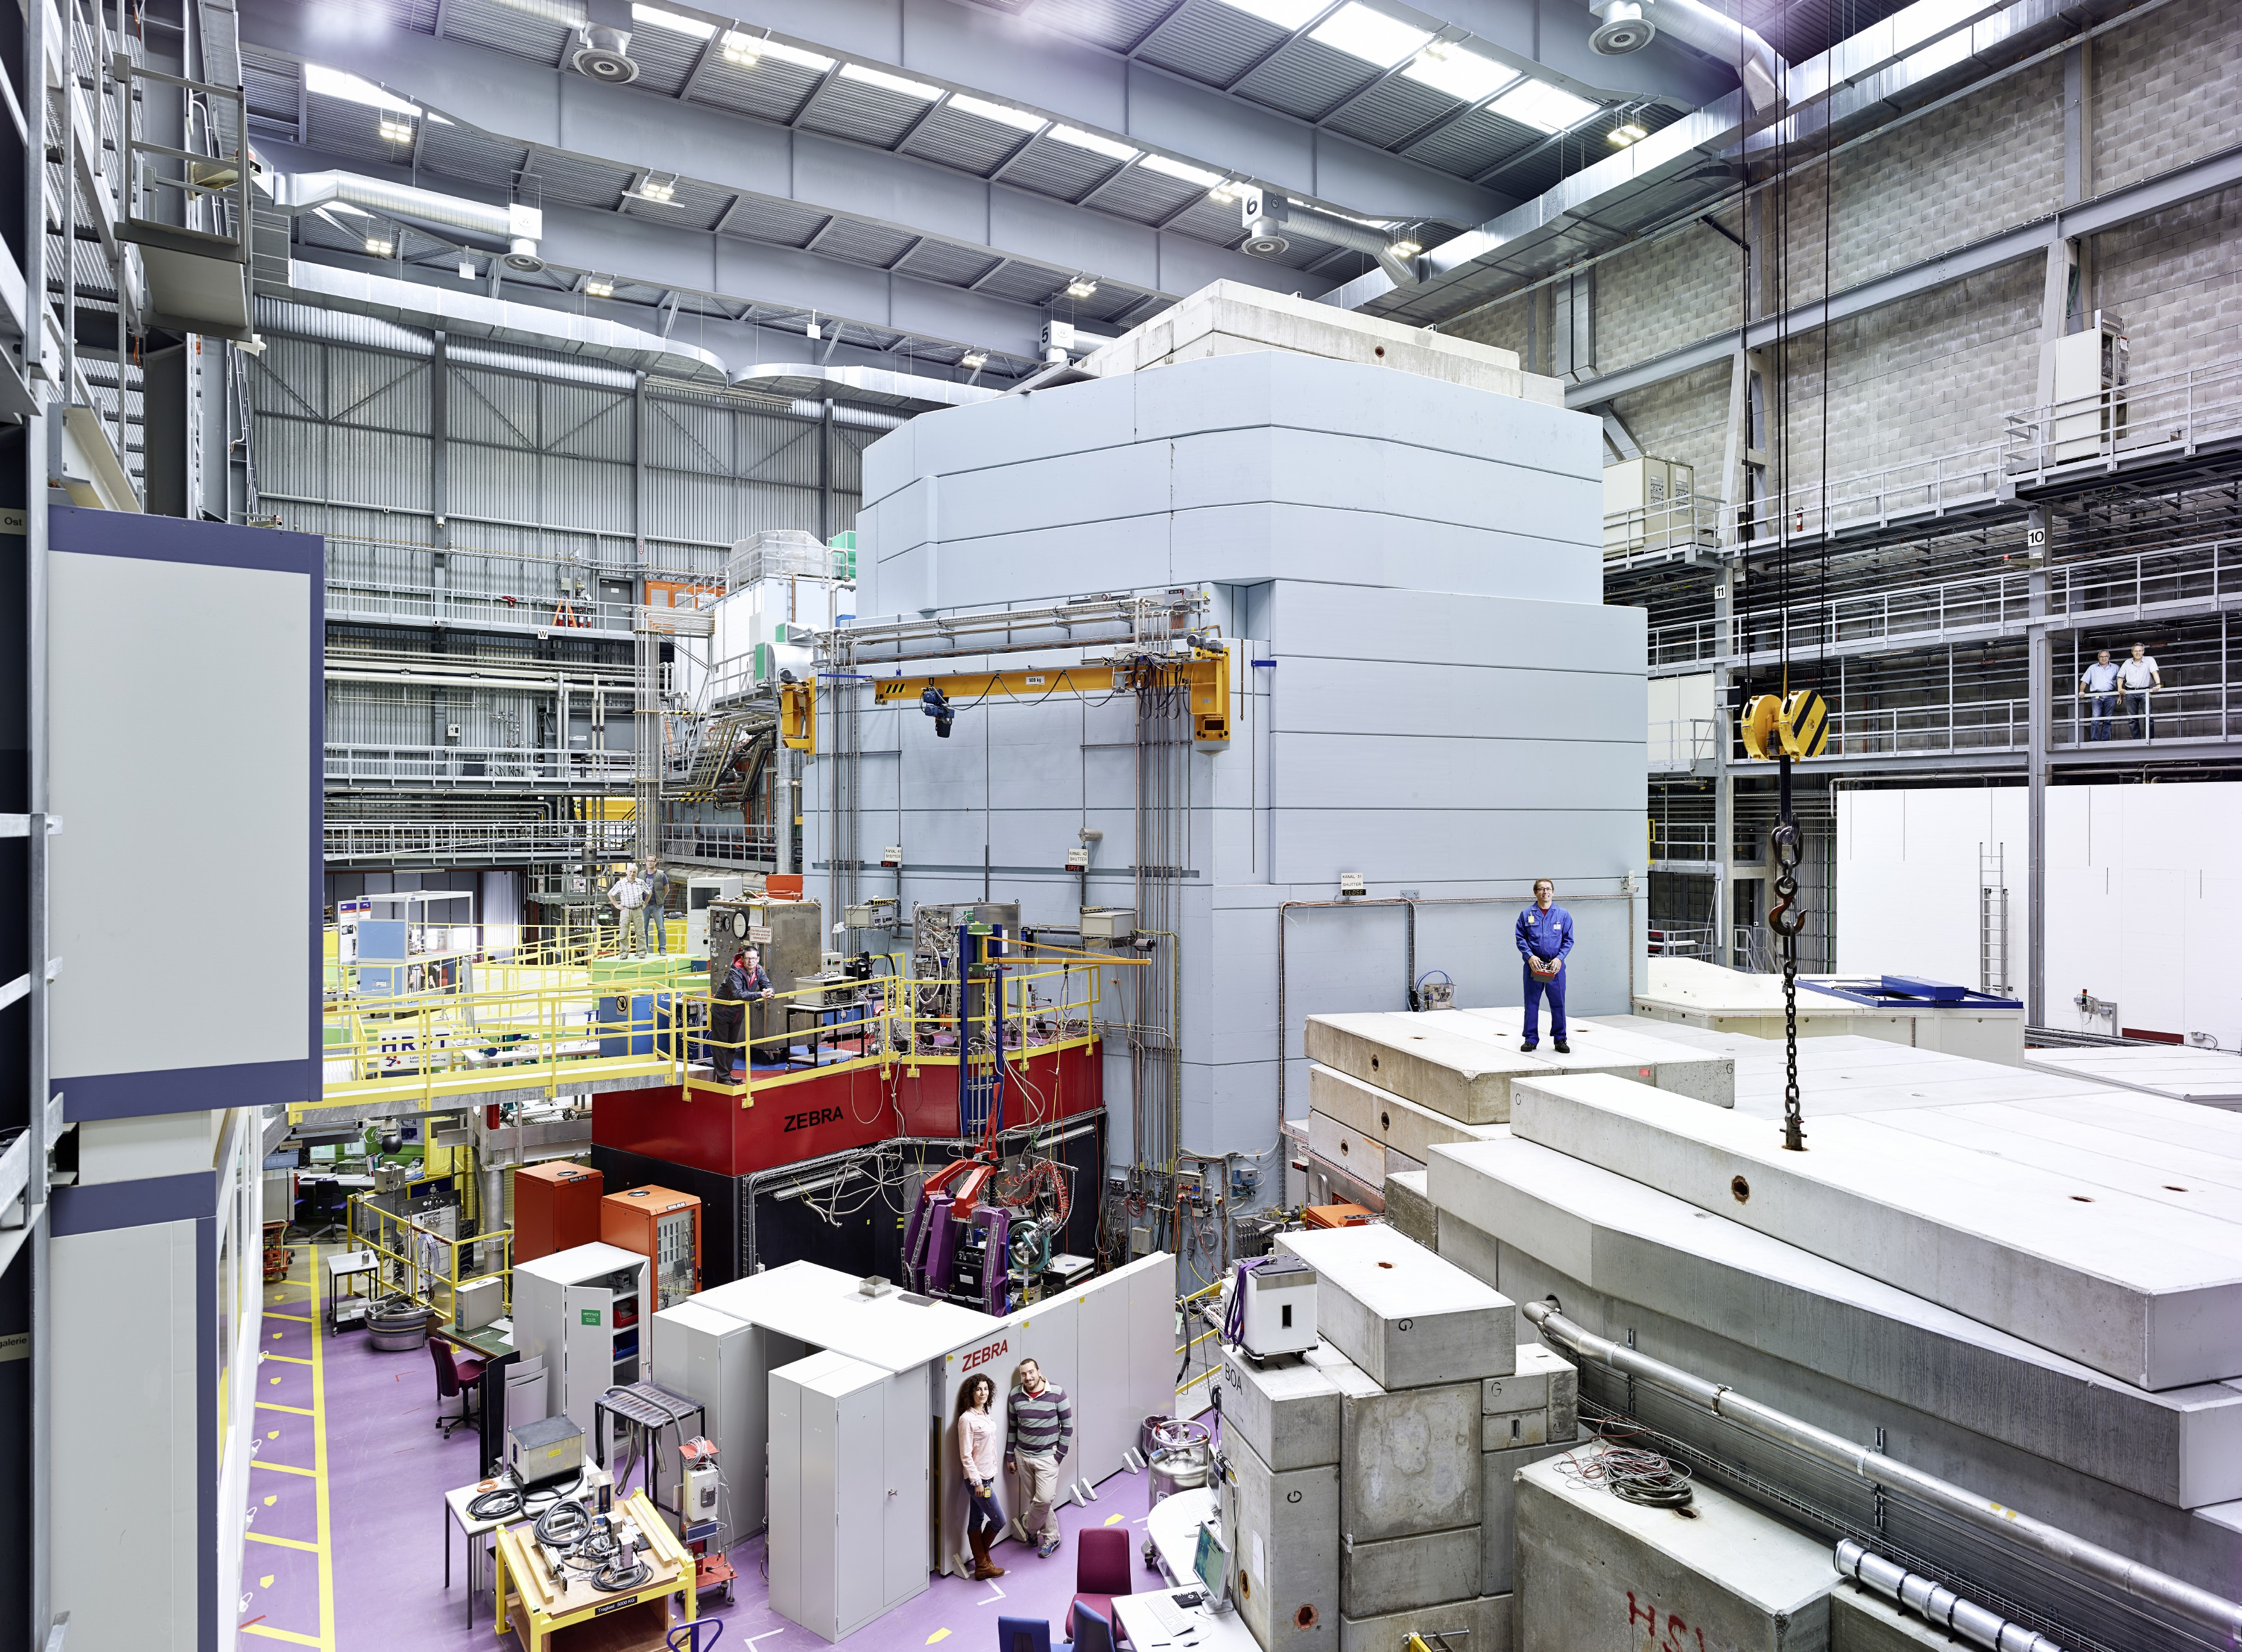 Part of the experiment hall at the Swiss Spallation Neutron Source SINQ of the Paul Scherrer Institute PSI. Plainly visible in the middle of the picture is a light-blue steel and concrete structure: the neutron source. Inside it there is a water-filled container and within that, in turn, sits a block of metal from which a beam of fast protons knocks out neutrons for the experiments. Experiment stations are arranged around this neutron source. (Photo: Scanderbeg Sauer Photography)